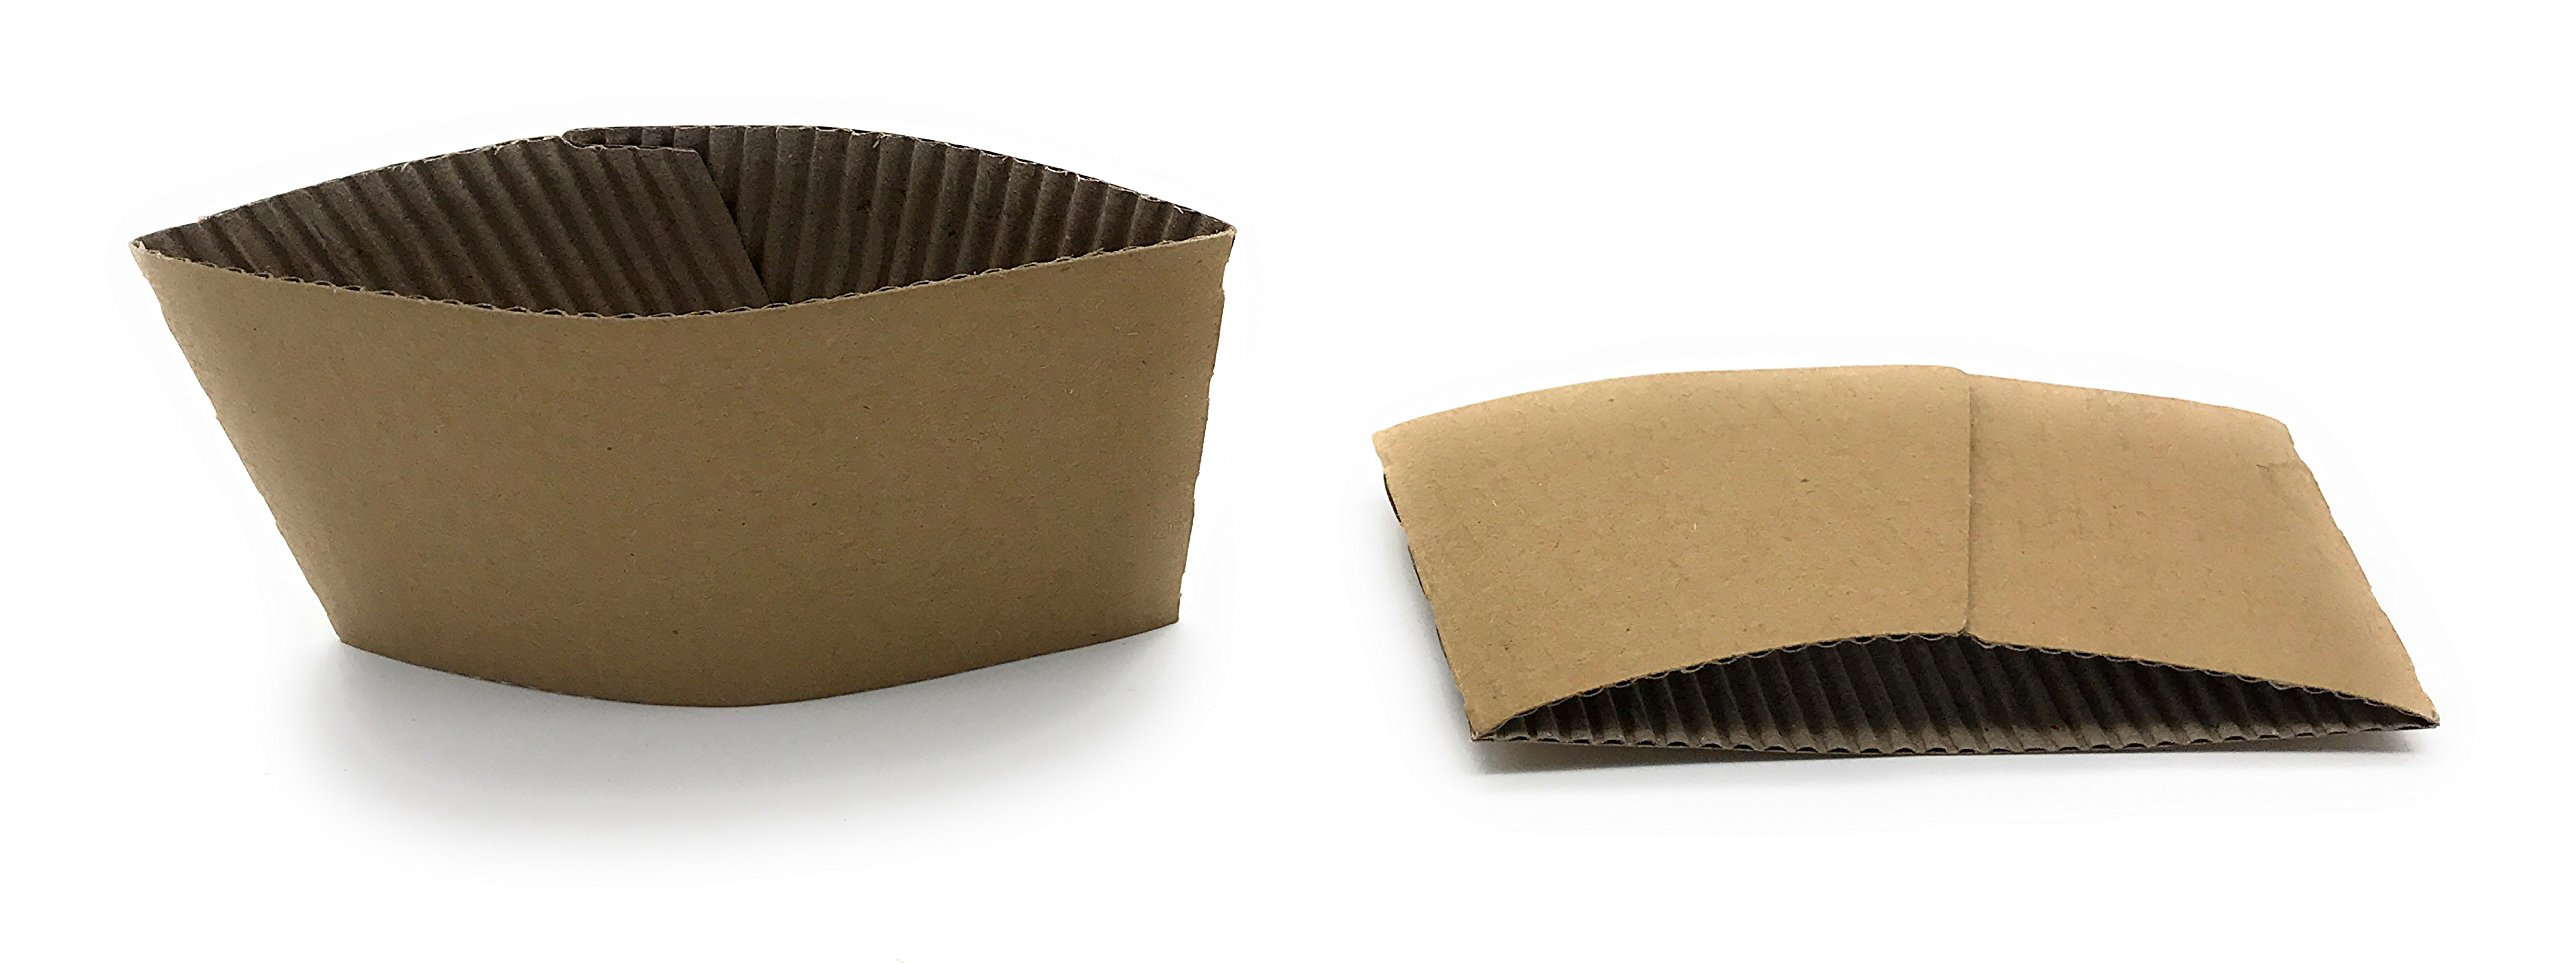 [5950 Count] Disposable Corrugated Hot Cup Sleeves Java Jackets - Natural compostable Kraft Color Cup Sleeve Protective Heat Insulation Paper Plastic Cups hot Coffee Tea Chocolate Drinks Insulated by Harvest Pack (Image #2)